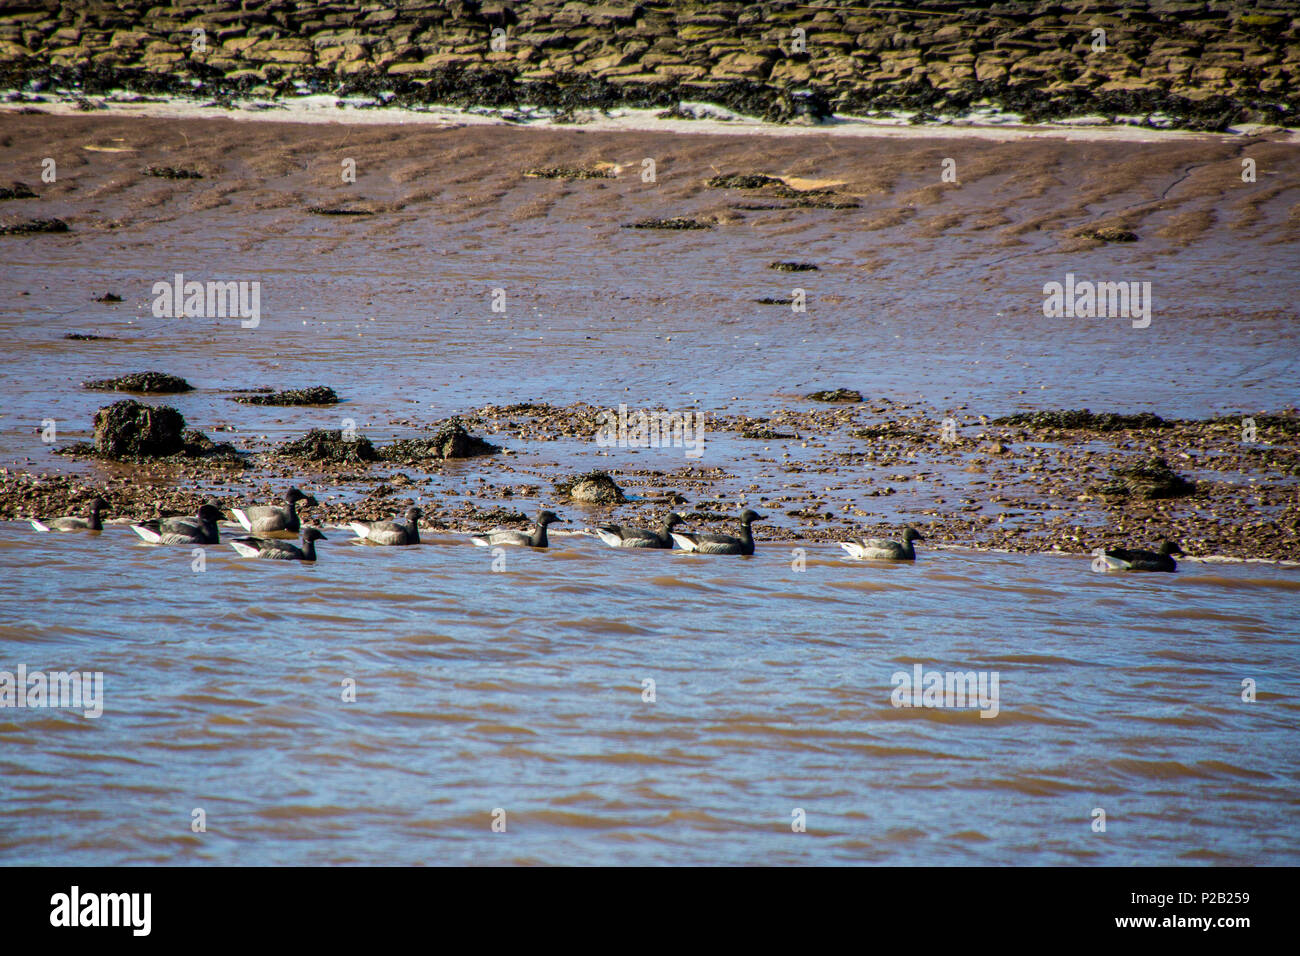 A group of Brent Geese (Branta bernicla) on the mudflats of the River Exe near Topsham, Devon, England, UK - Stock Image